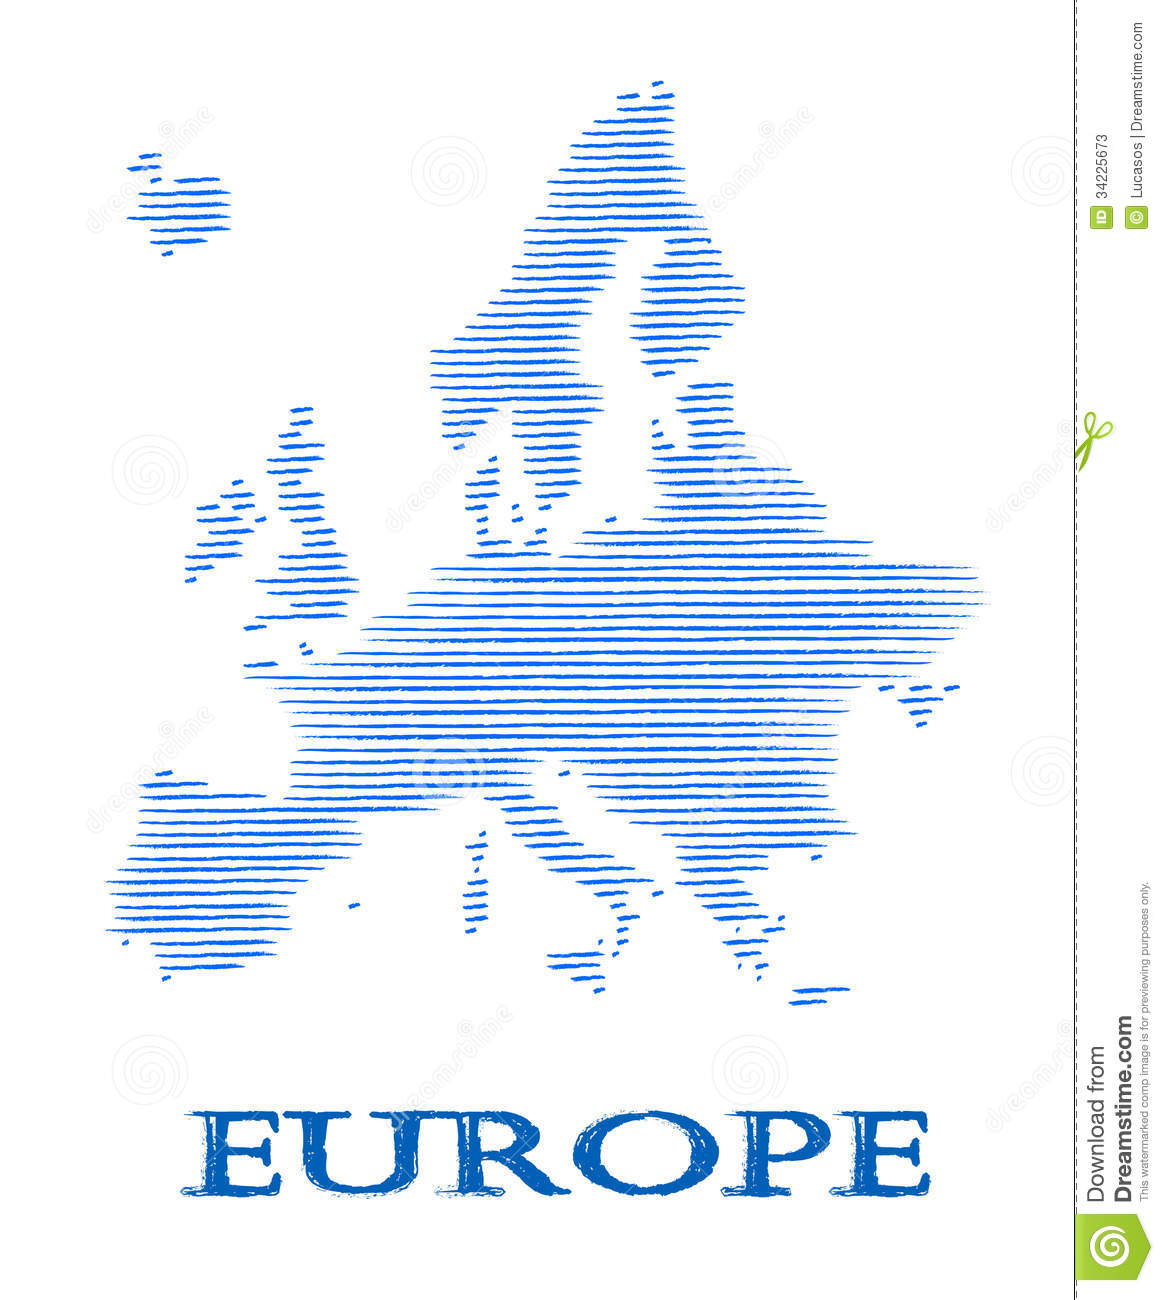 vector illustration of europe - photo #29